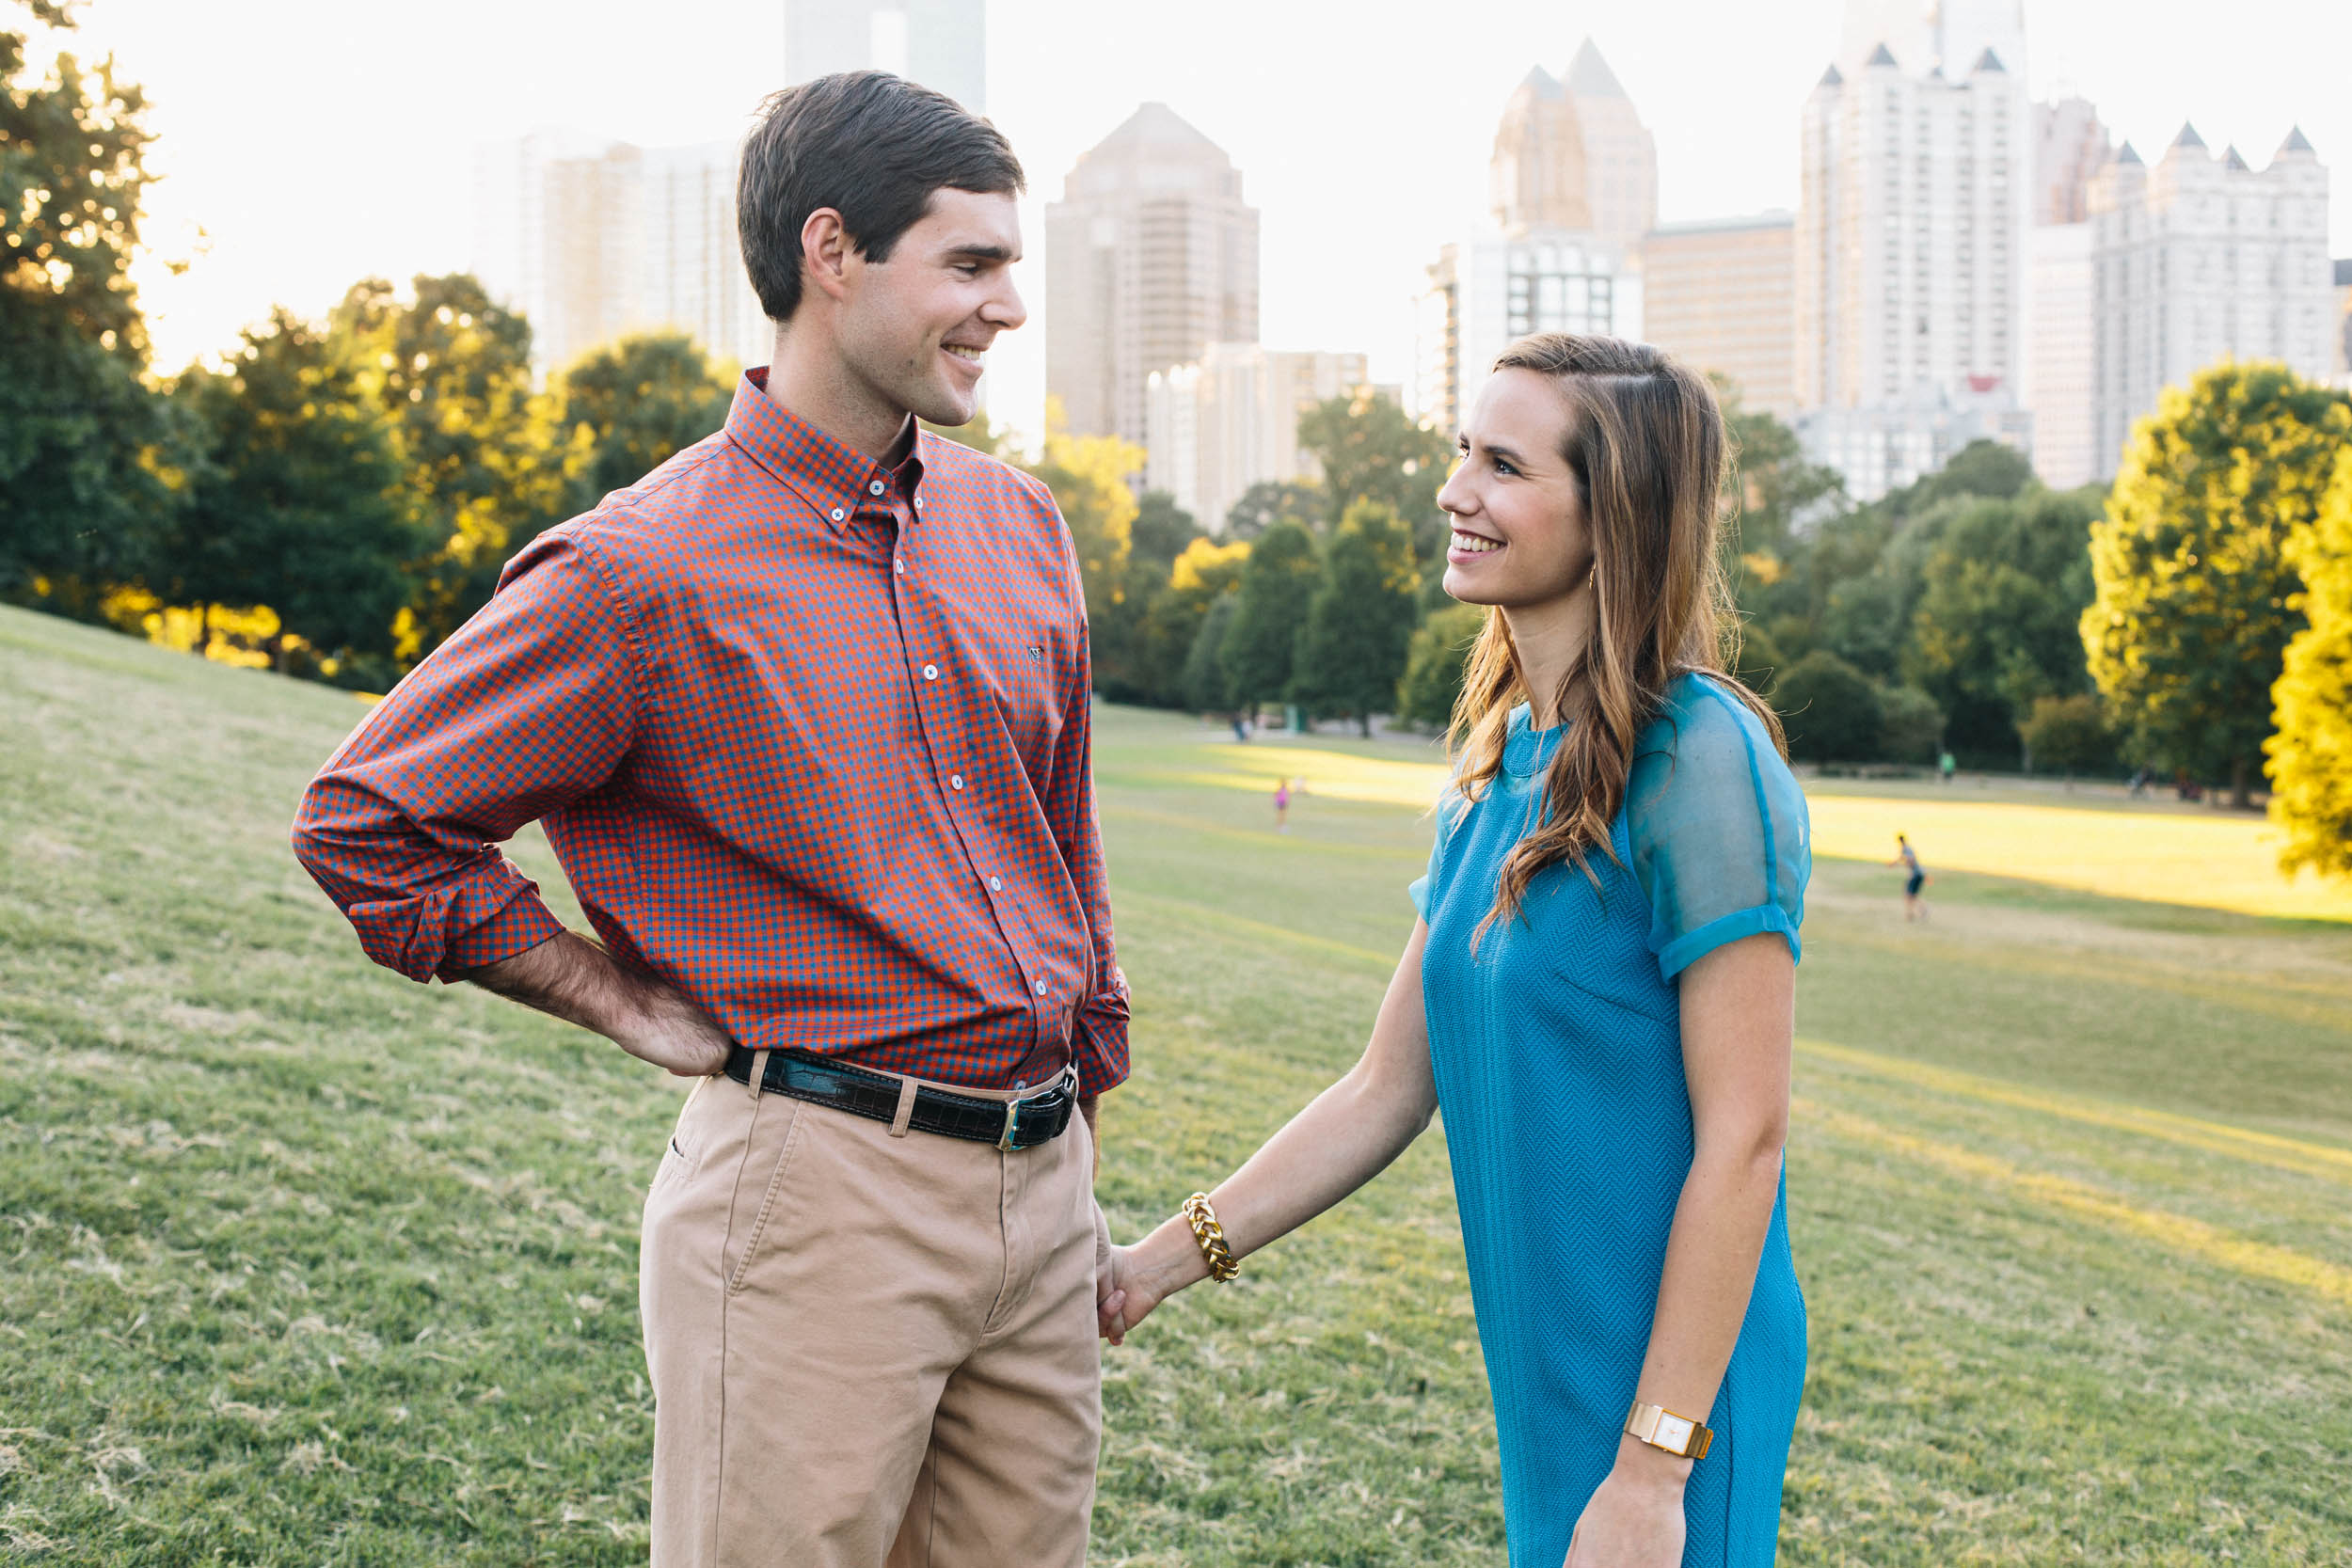 jimmy-rowalt-atlanta-engagement-photography-004.jpg